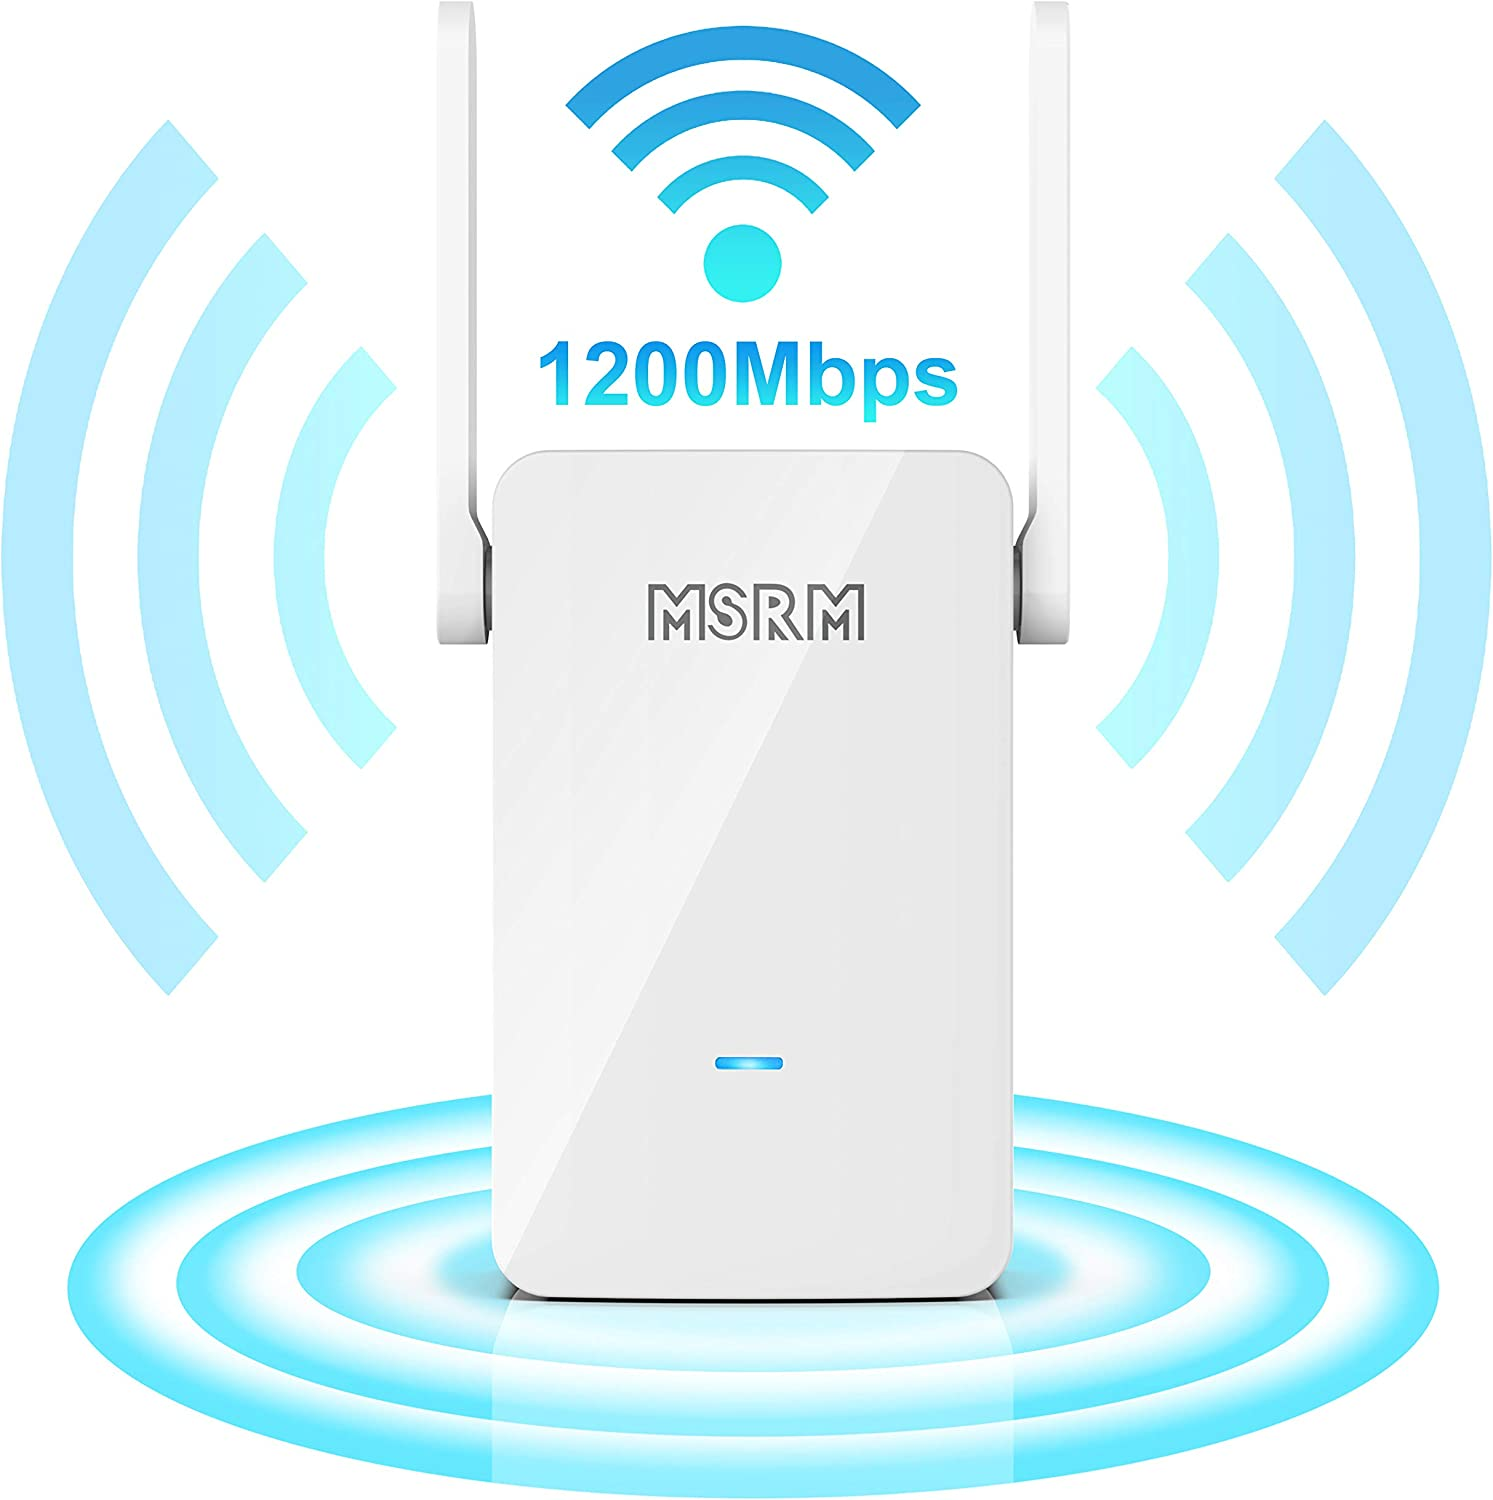 Computers & Accessories Repeaters ghdonat.com 1200Mbps WiFi ...